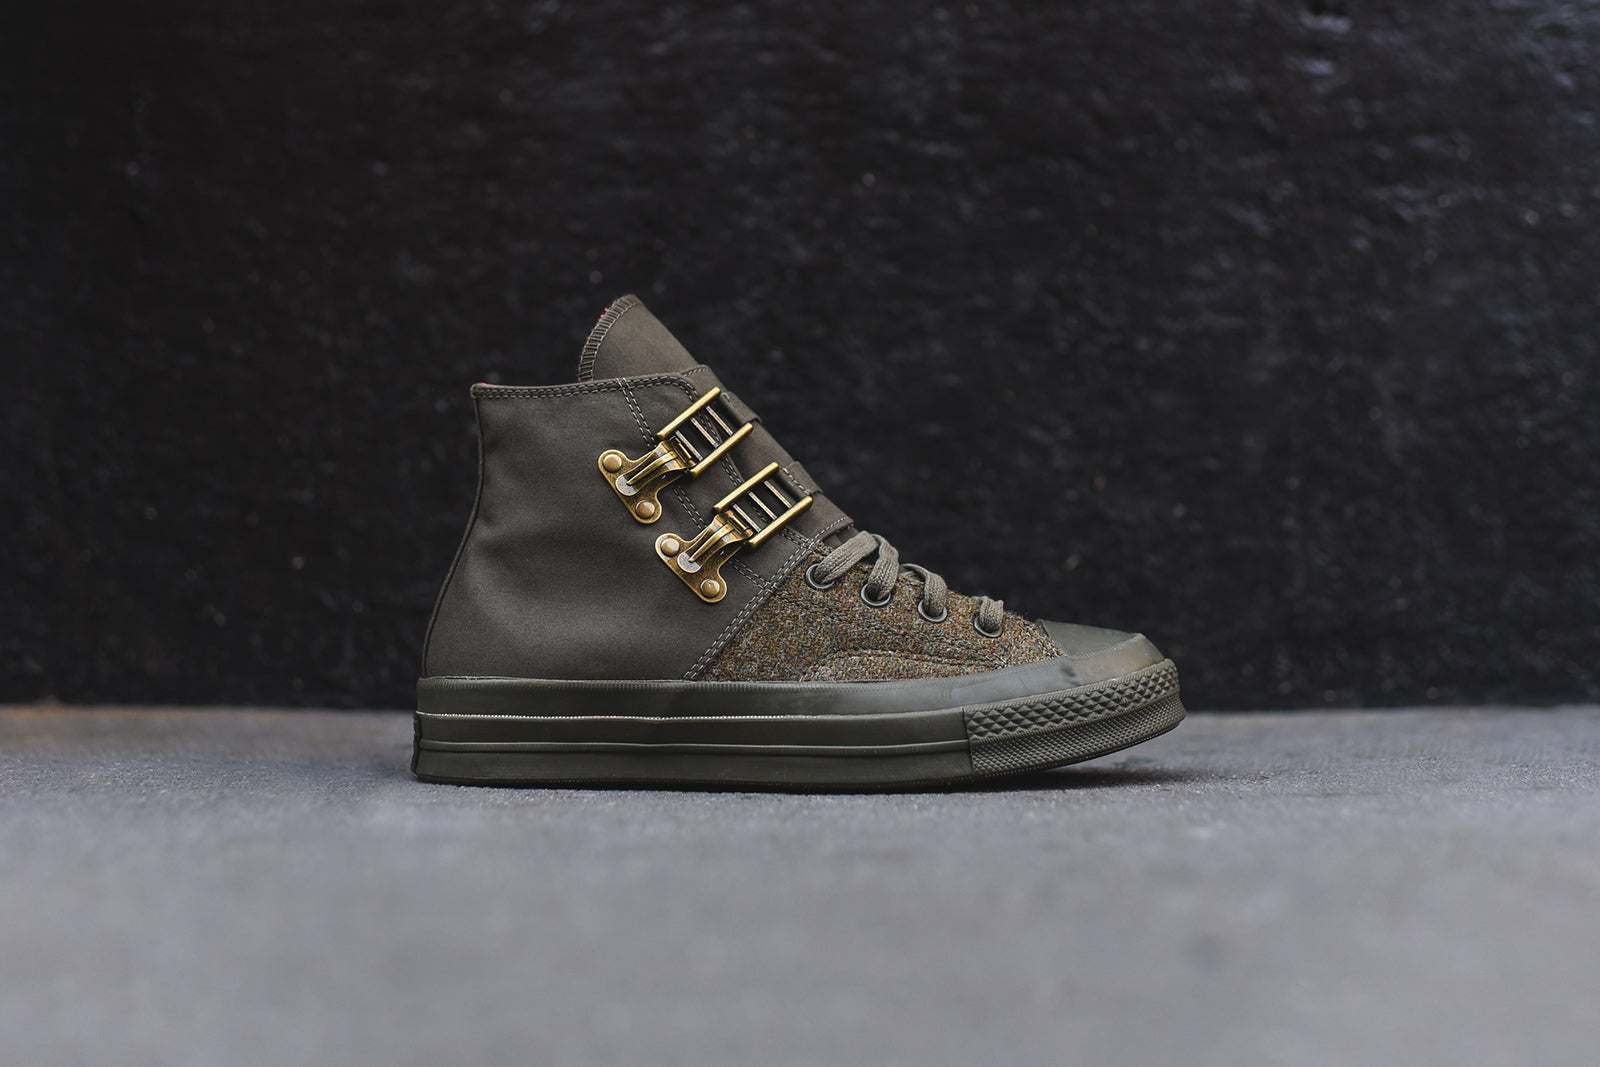 Converse x Nigel Cabourn Chuck Taylor All Star High Pack – Kith 4c5ec9e07a42